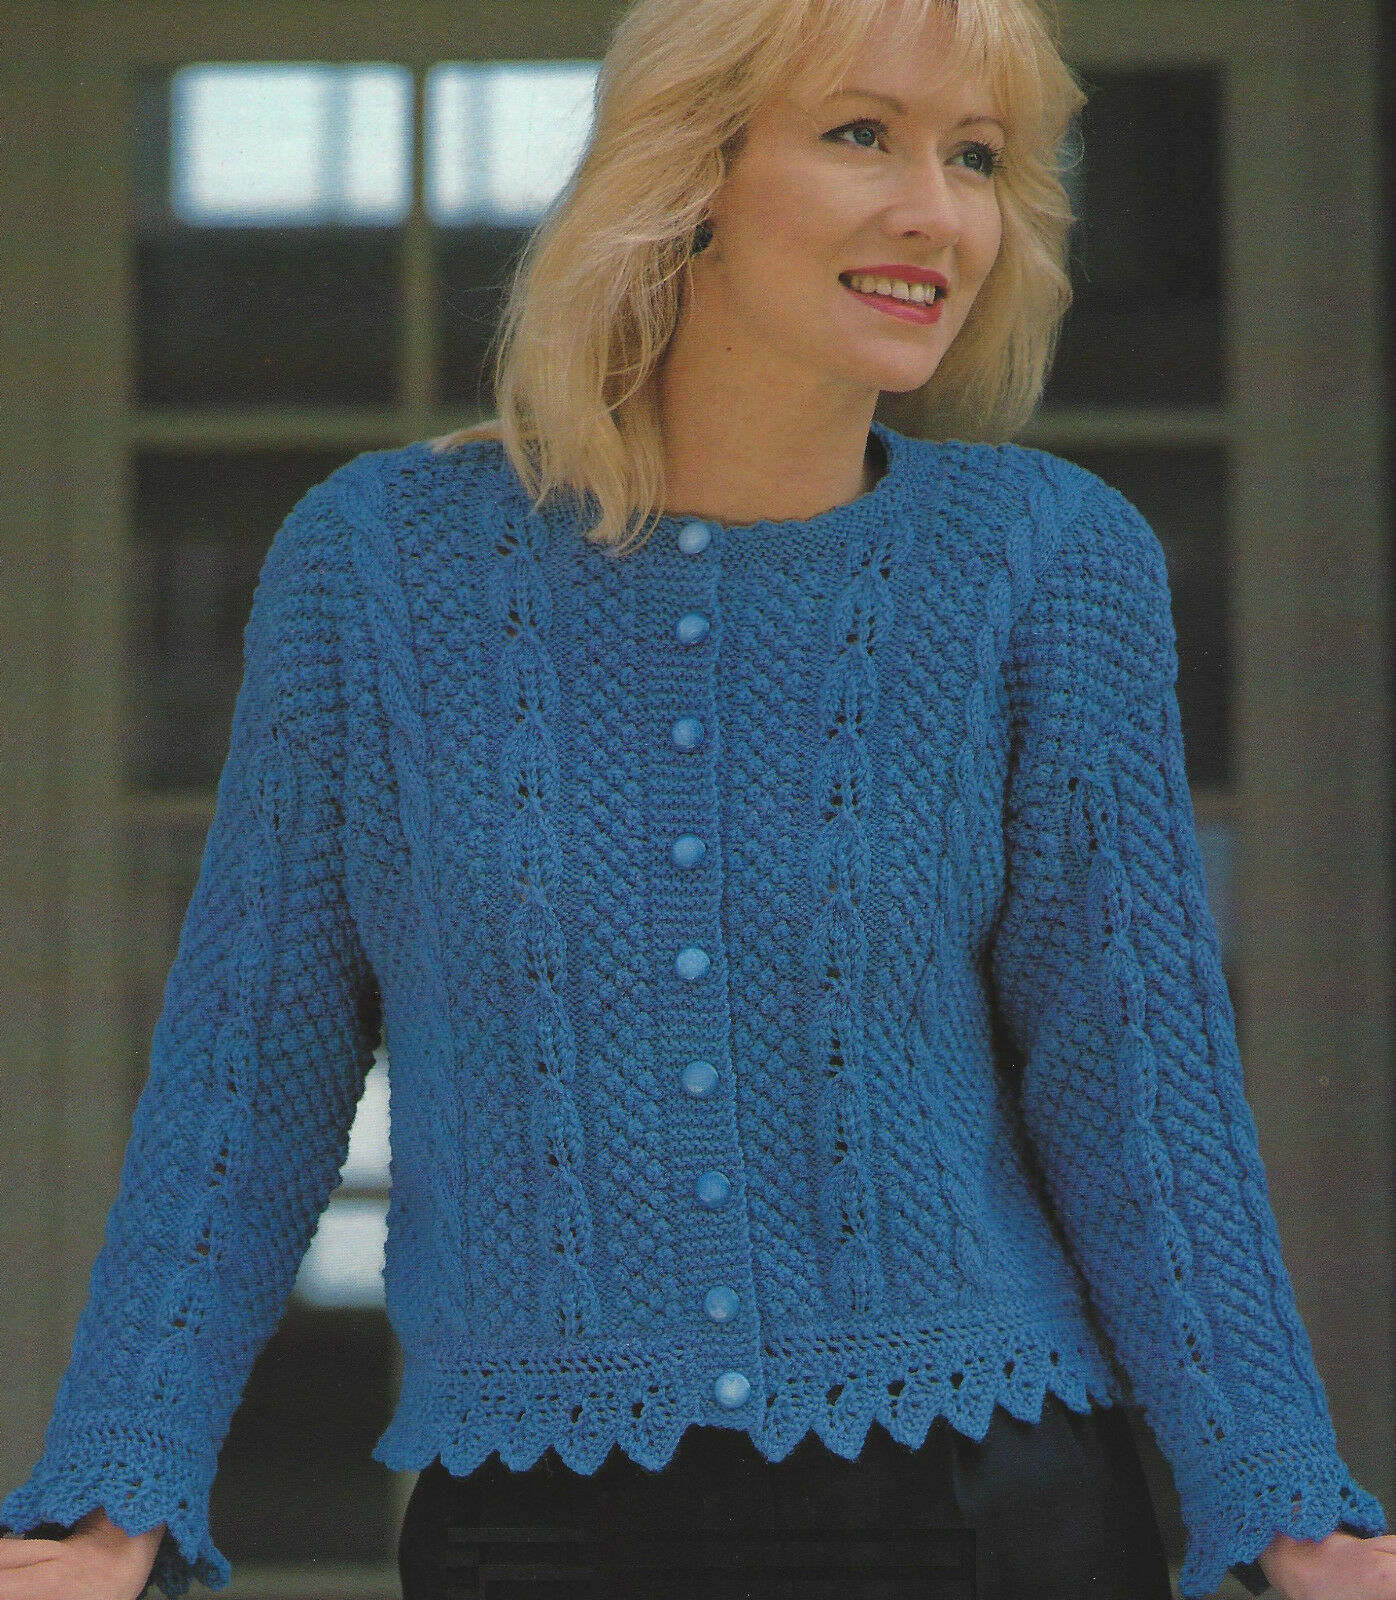 LADIES KNITTING PATTERN Cardigan with scalloped lace edge. 30-40\